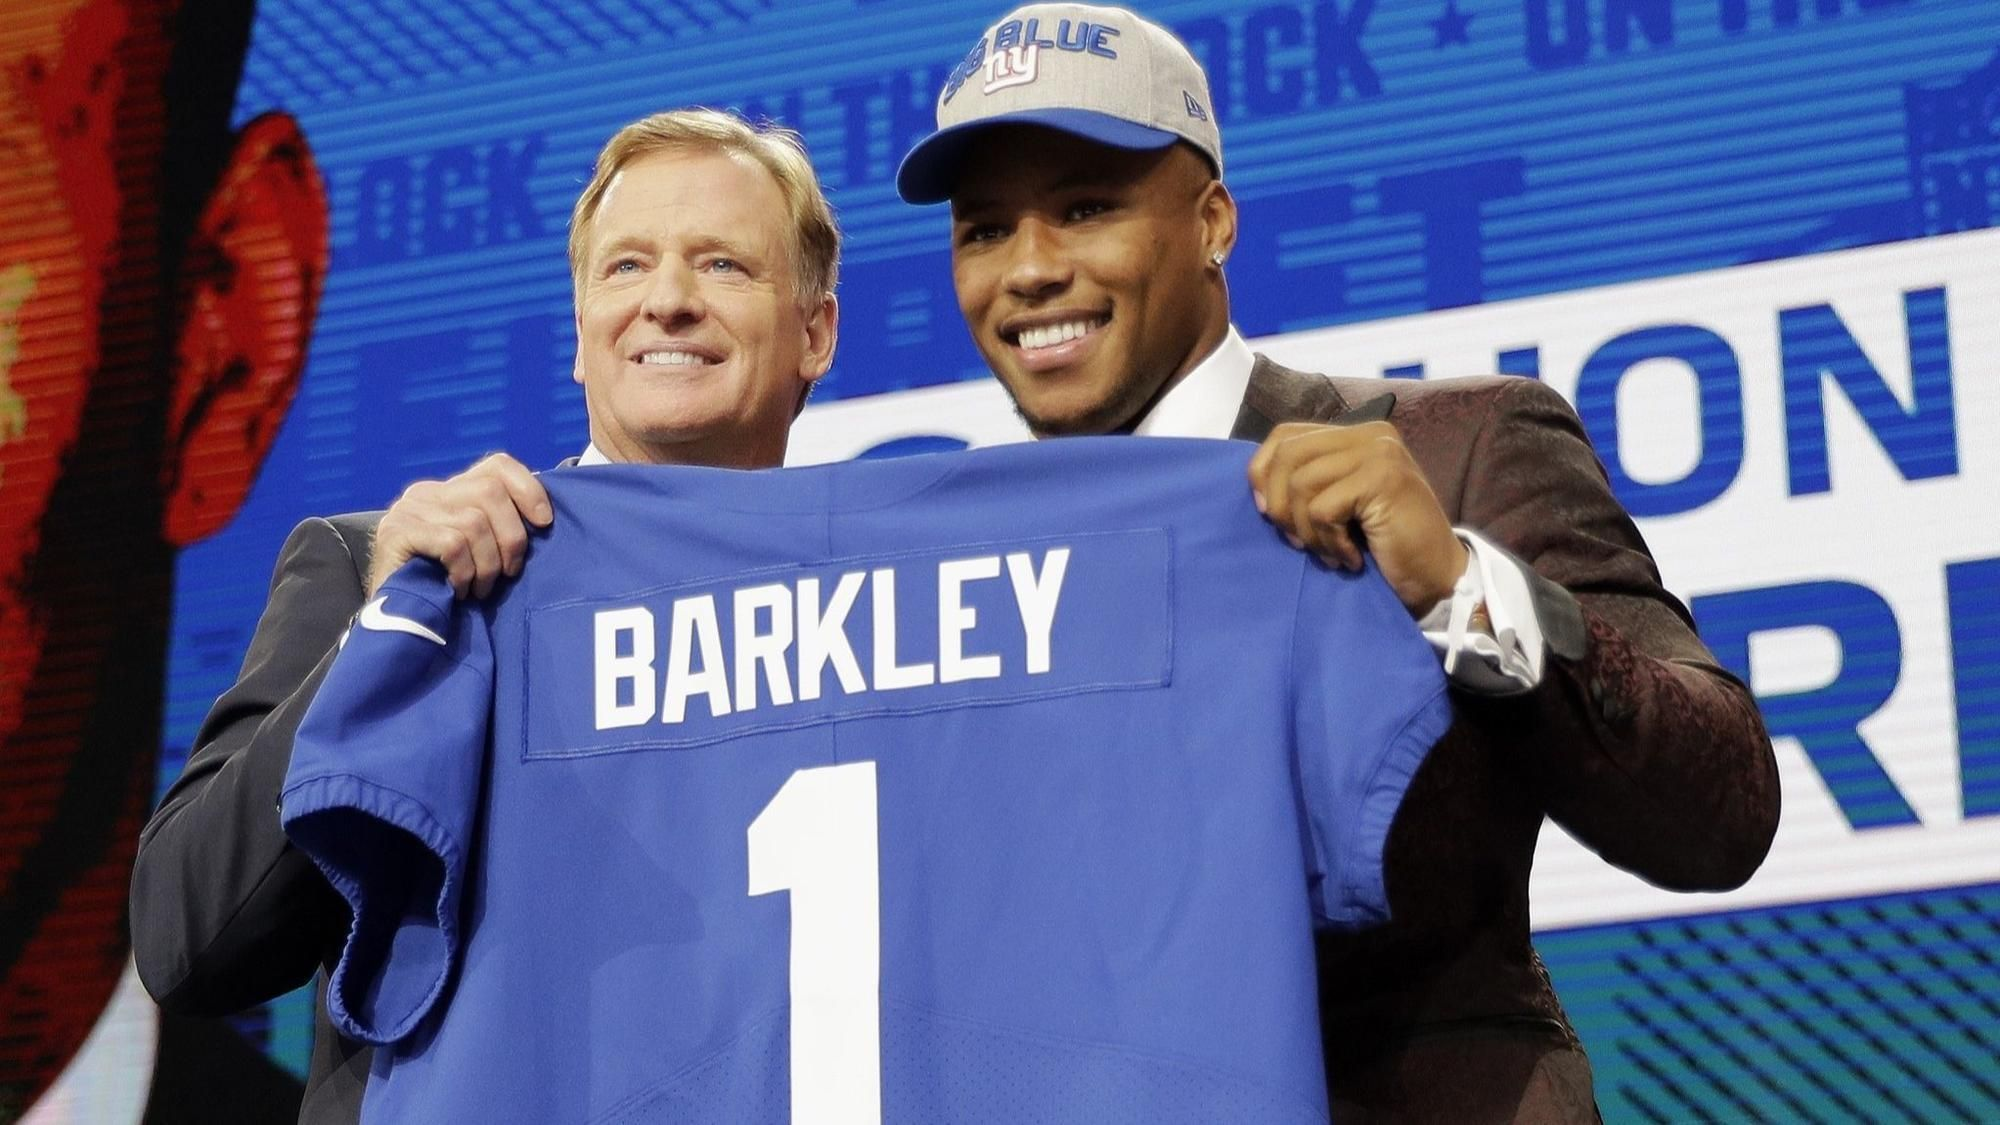 Saquon Barkley signed his fouryear rookie deal Sunday